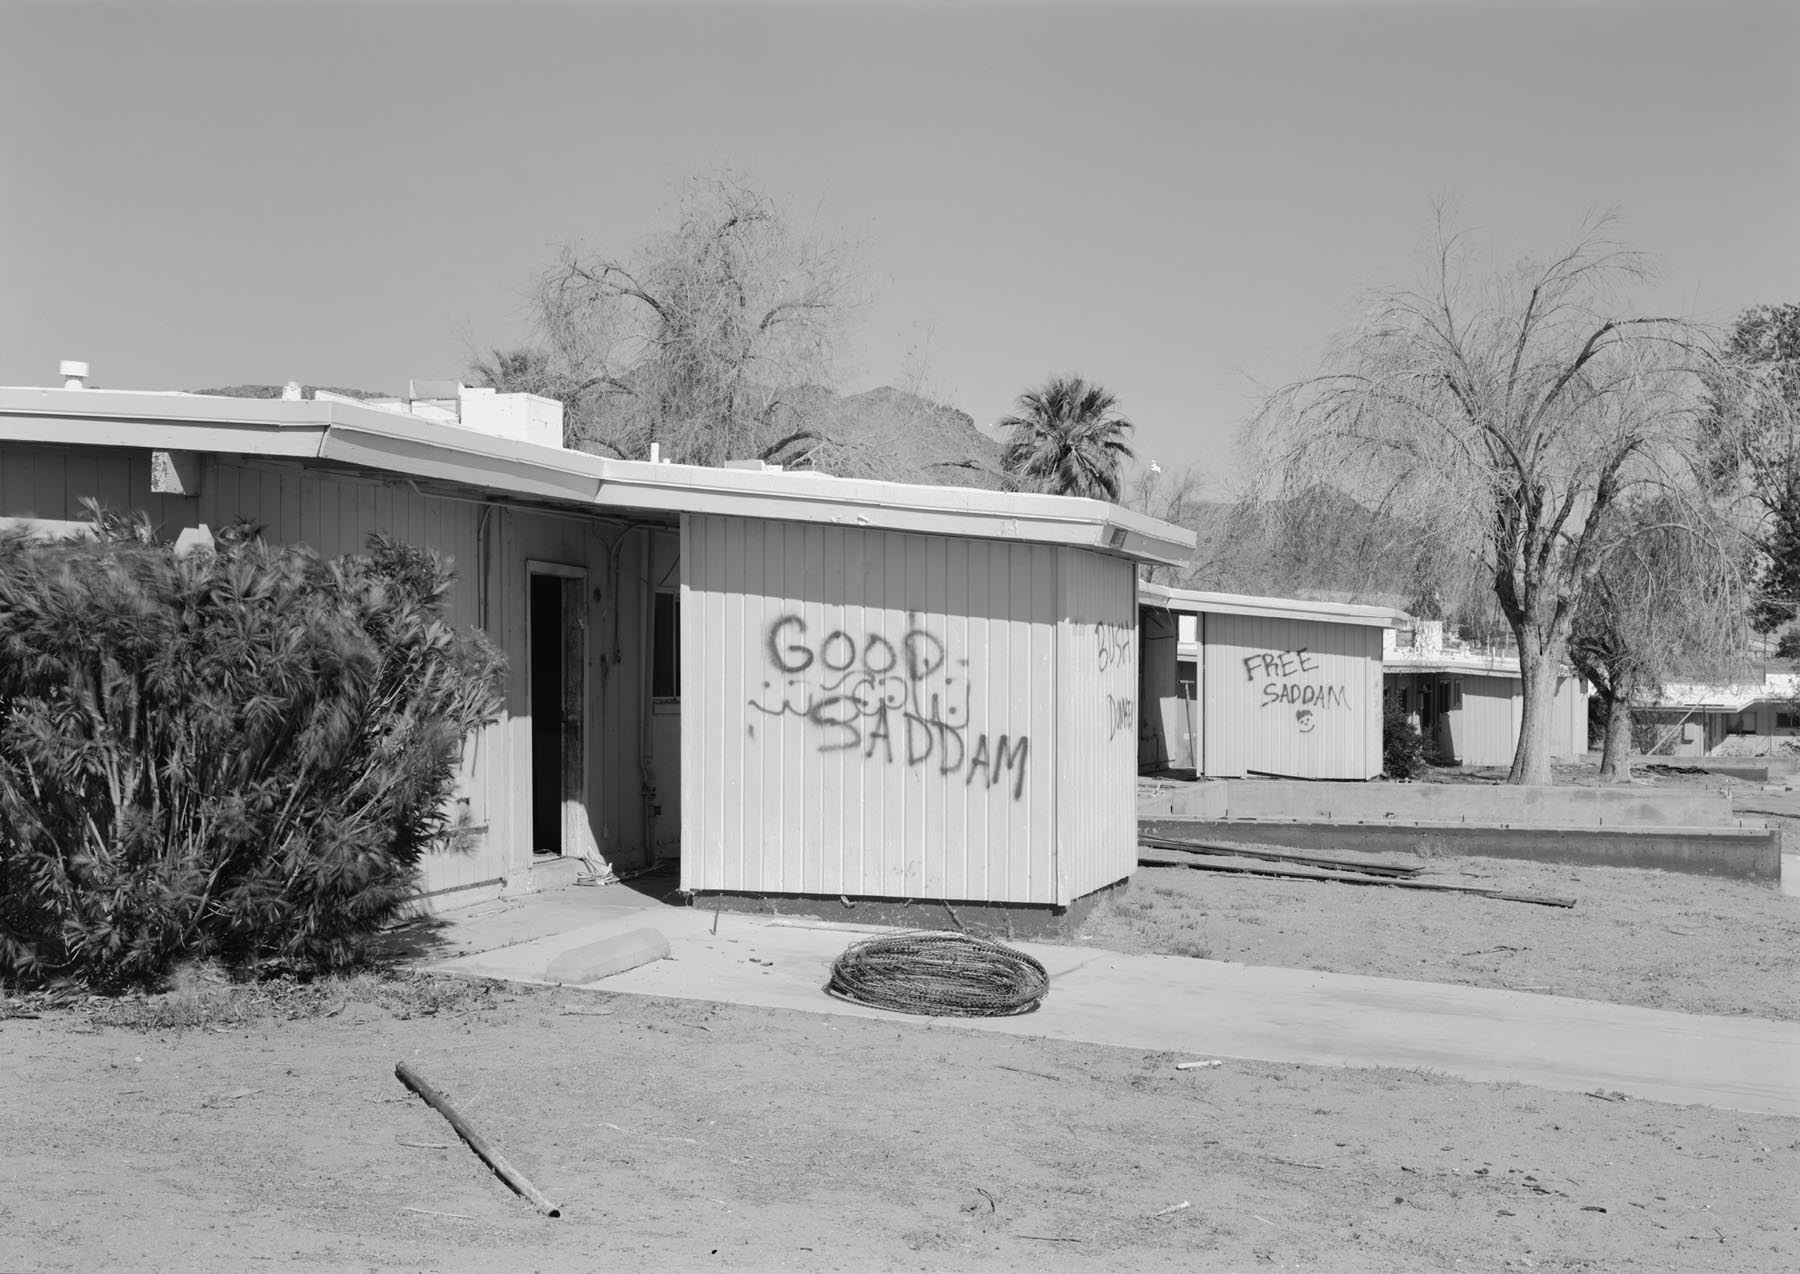 29 Palms: Security and Stability Operations, Graffiti I